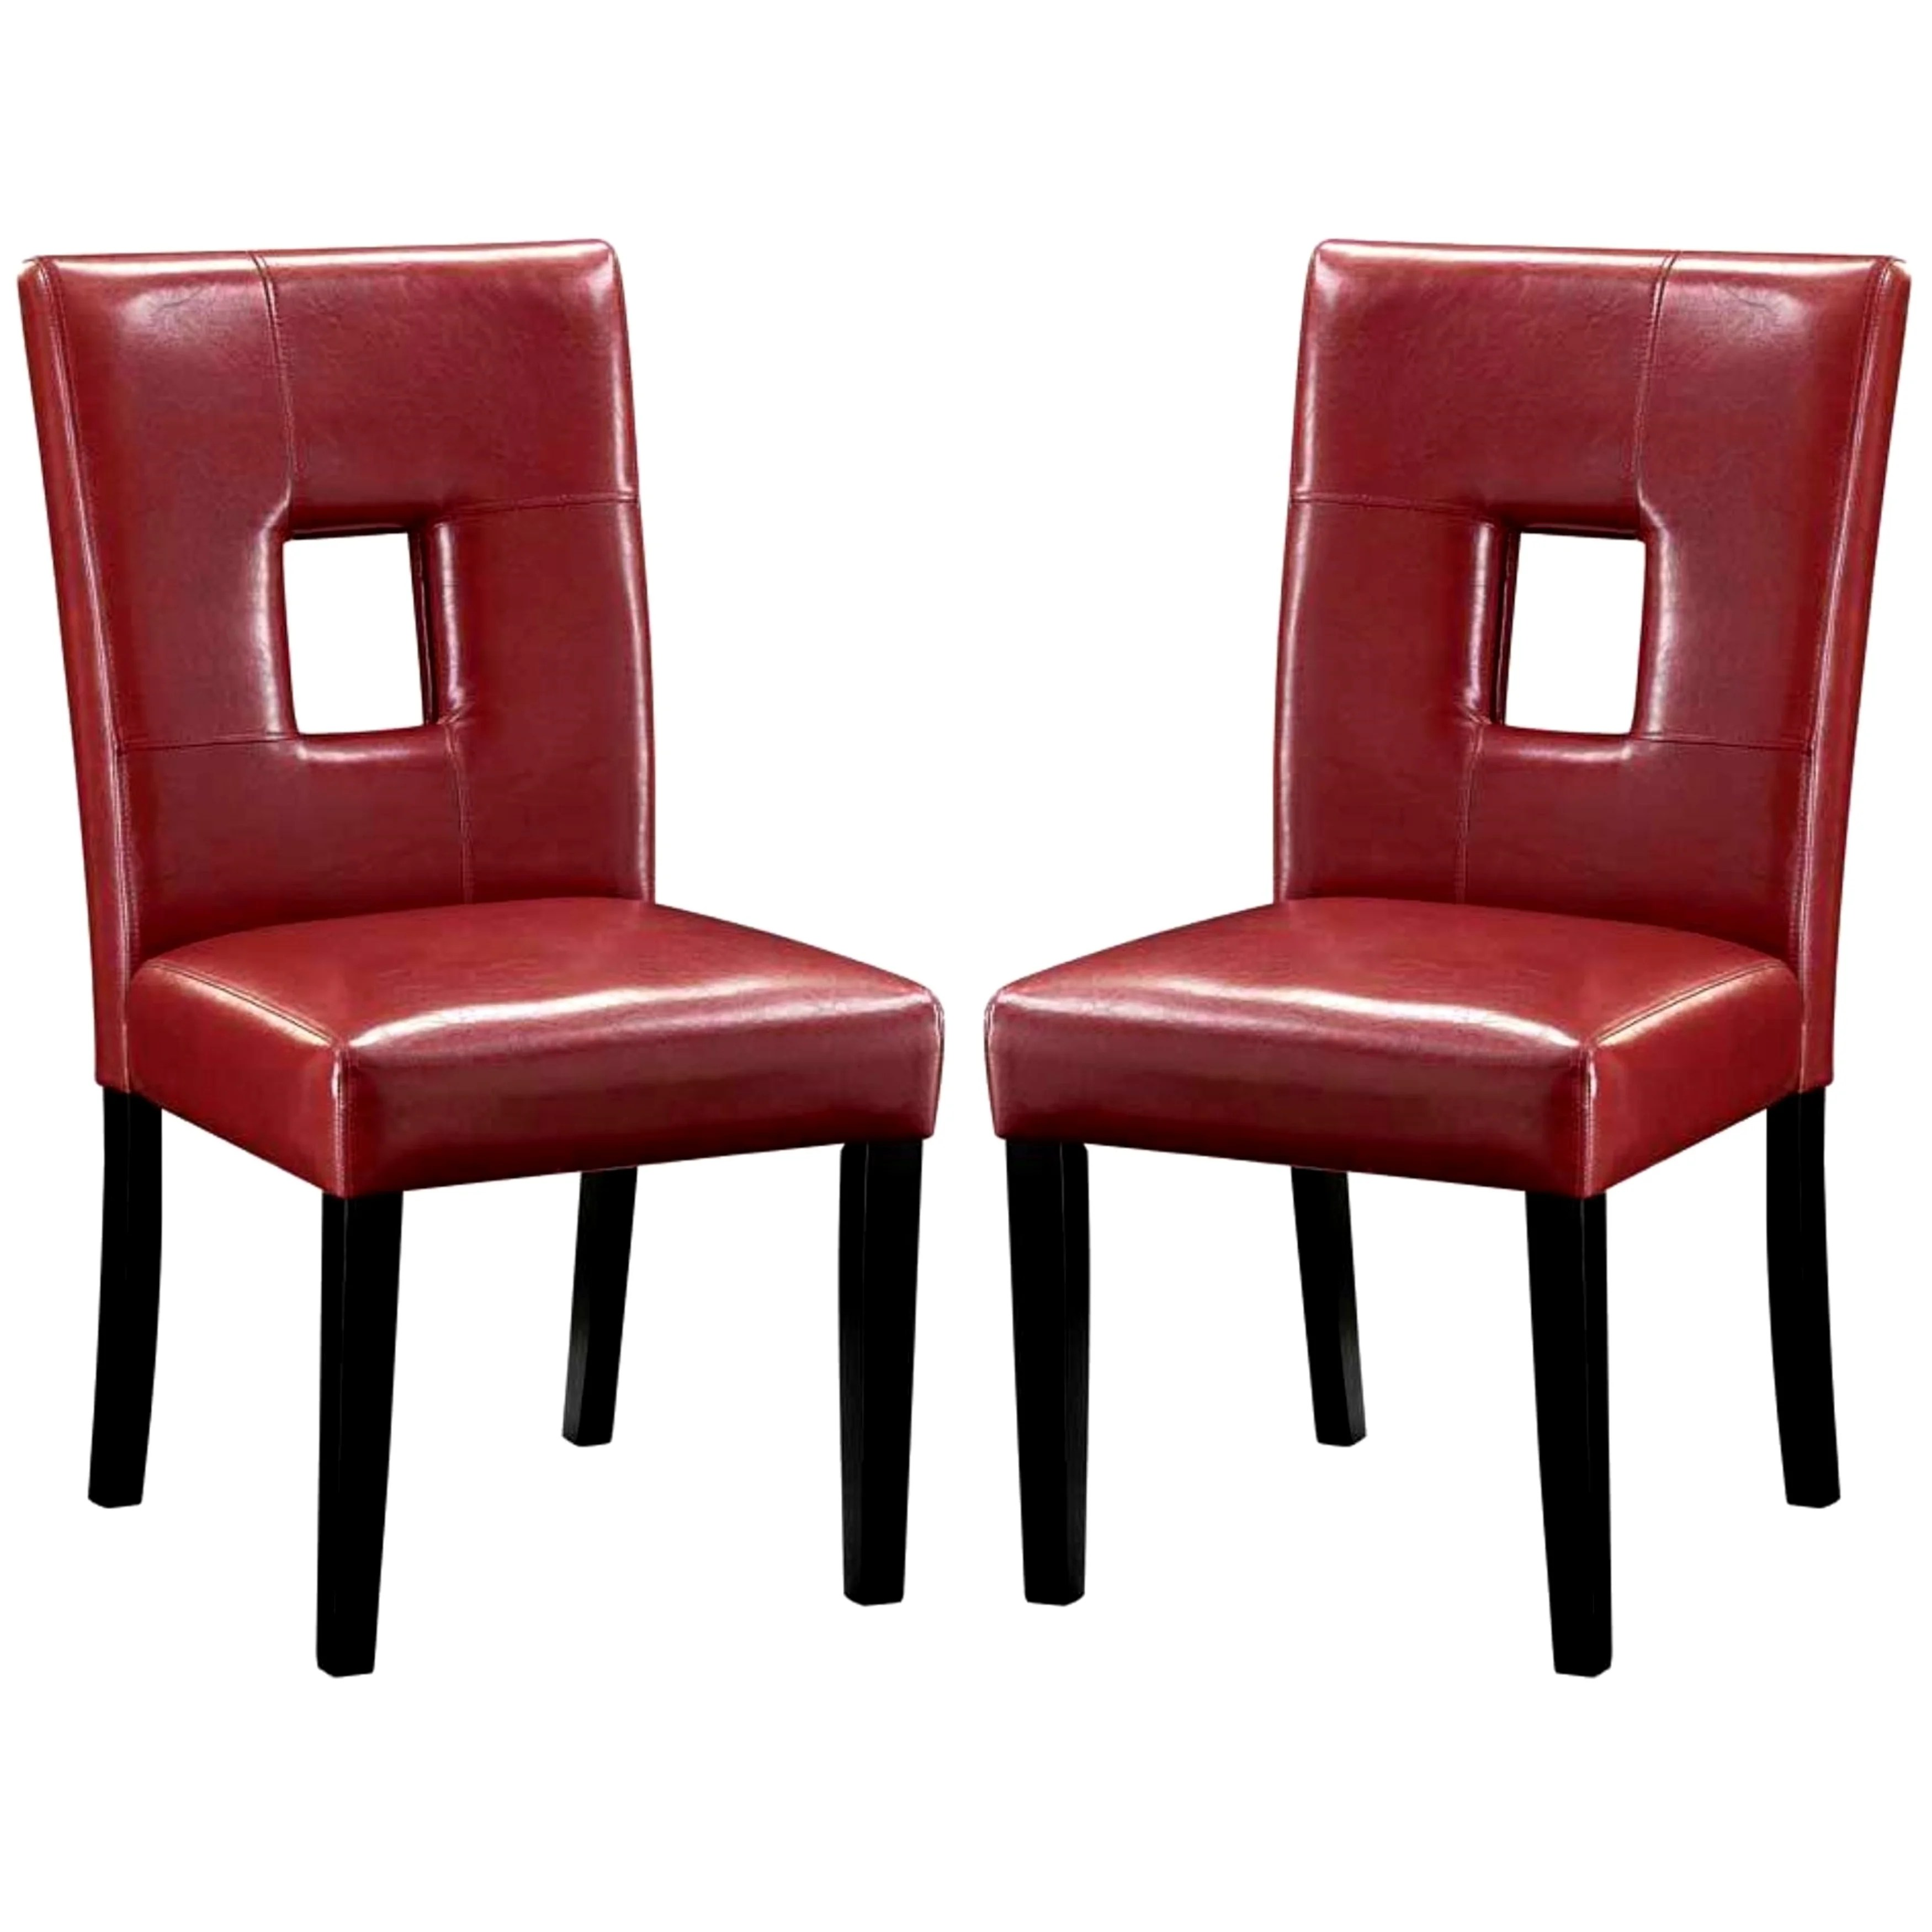 Red Upholstered Dining Chairs Epcot Open Back Red Upholstered Dining Chairs Set Of 2